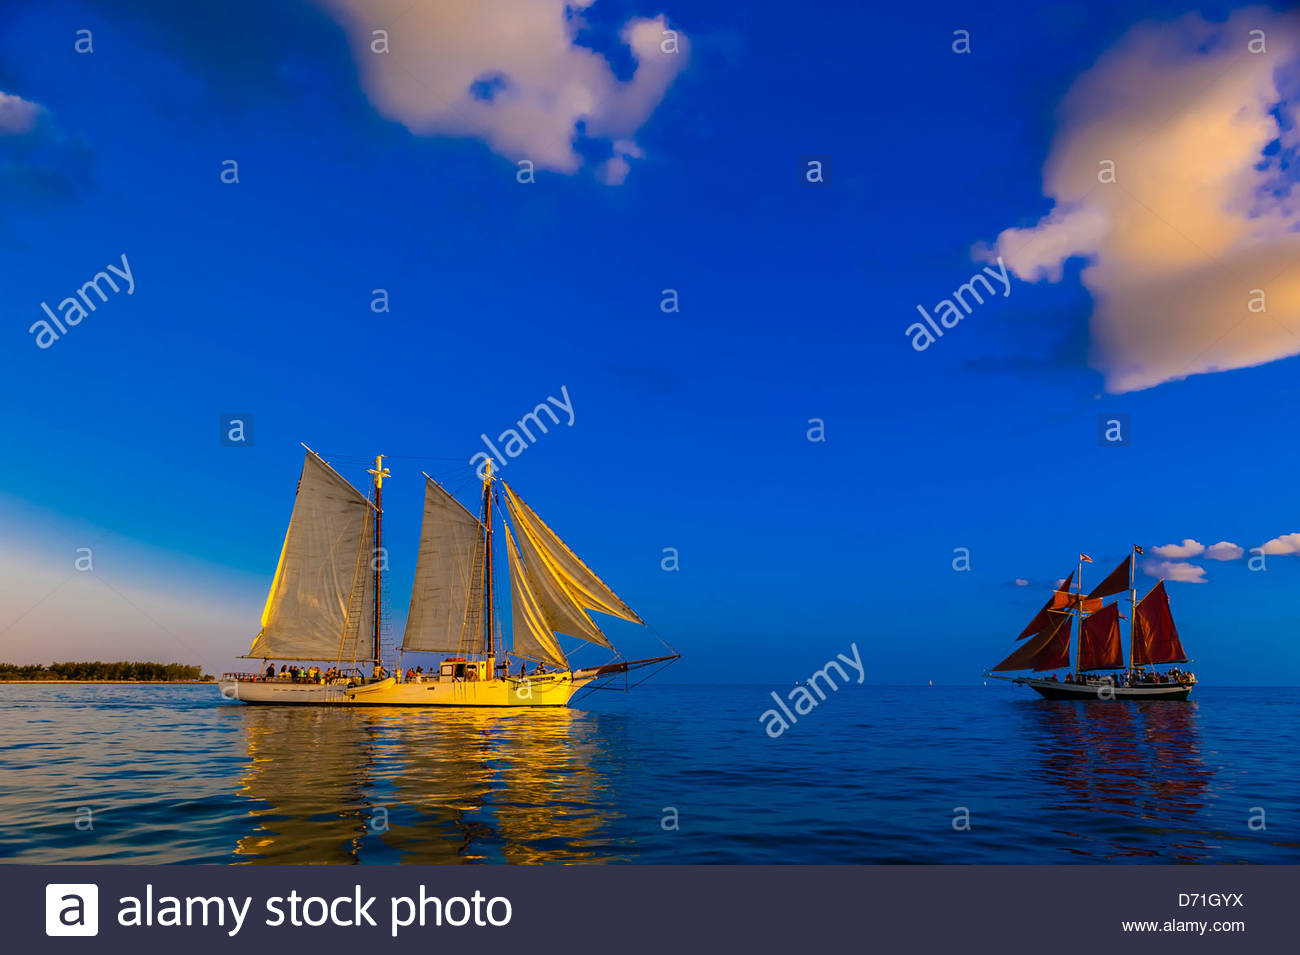 Schooner Western Union et le Jolly Rover II la voile au large de Key West, Florida Keys, Floride USA Photo Stock